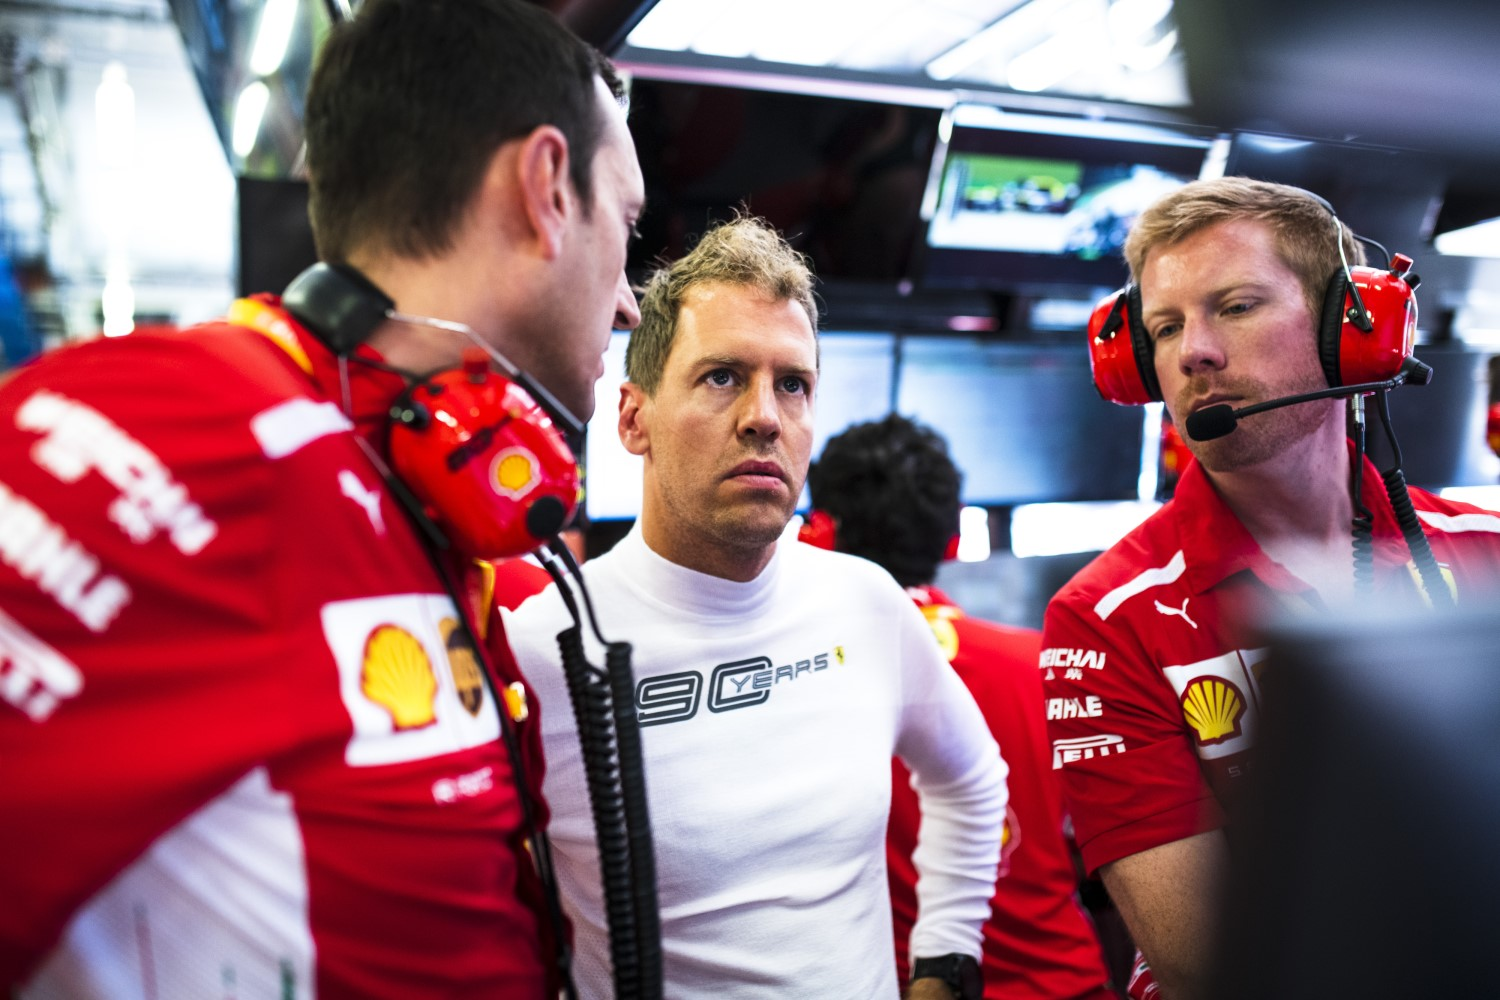 Vettel cannot believe his luck